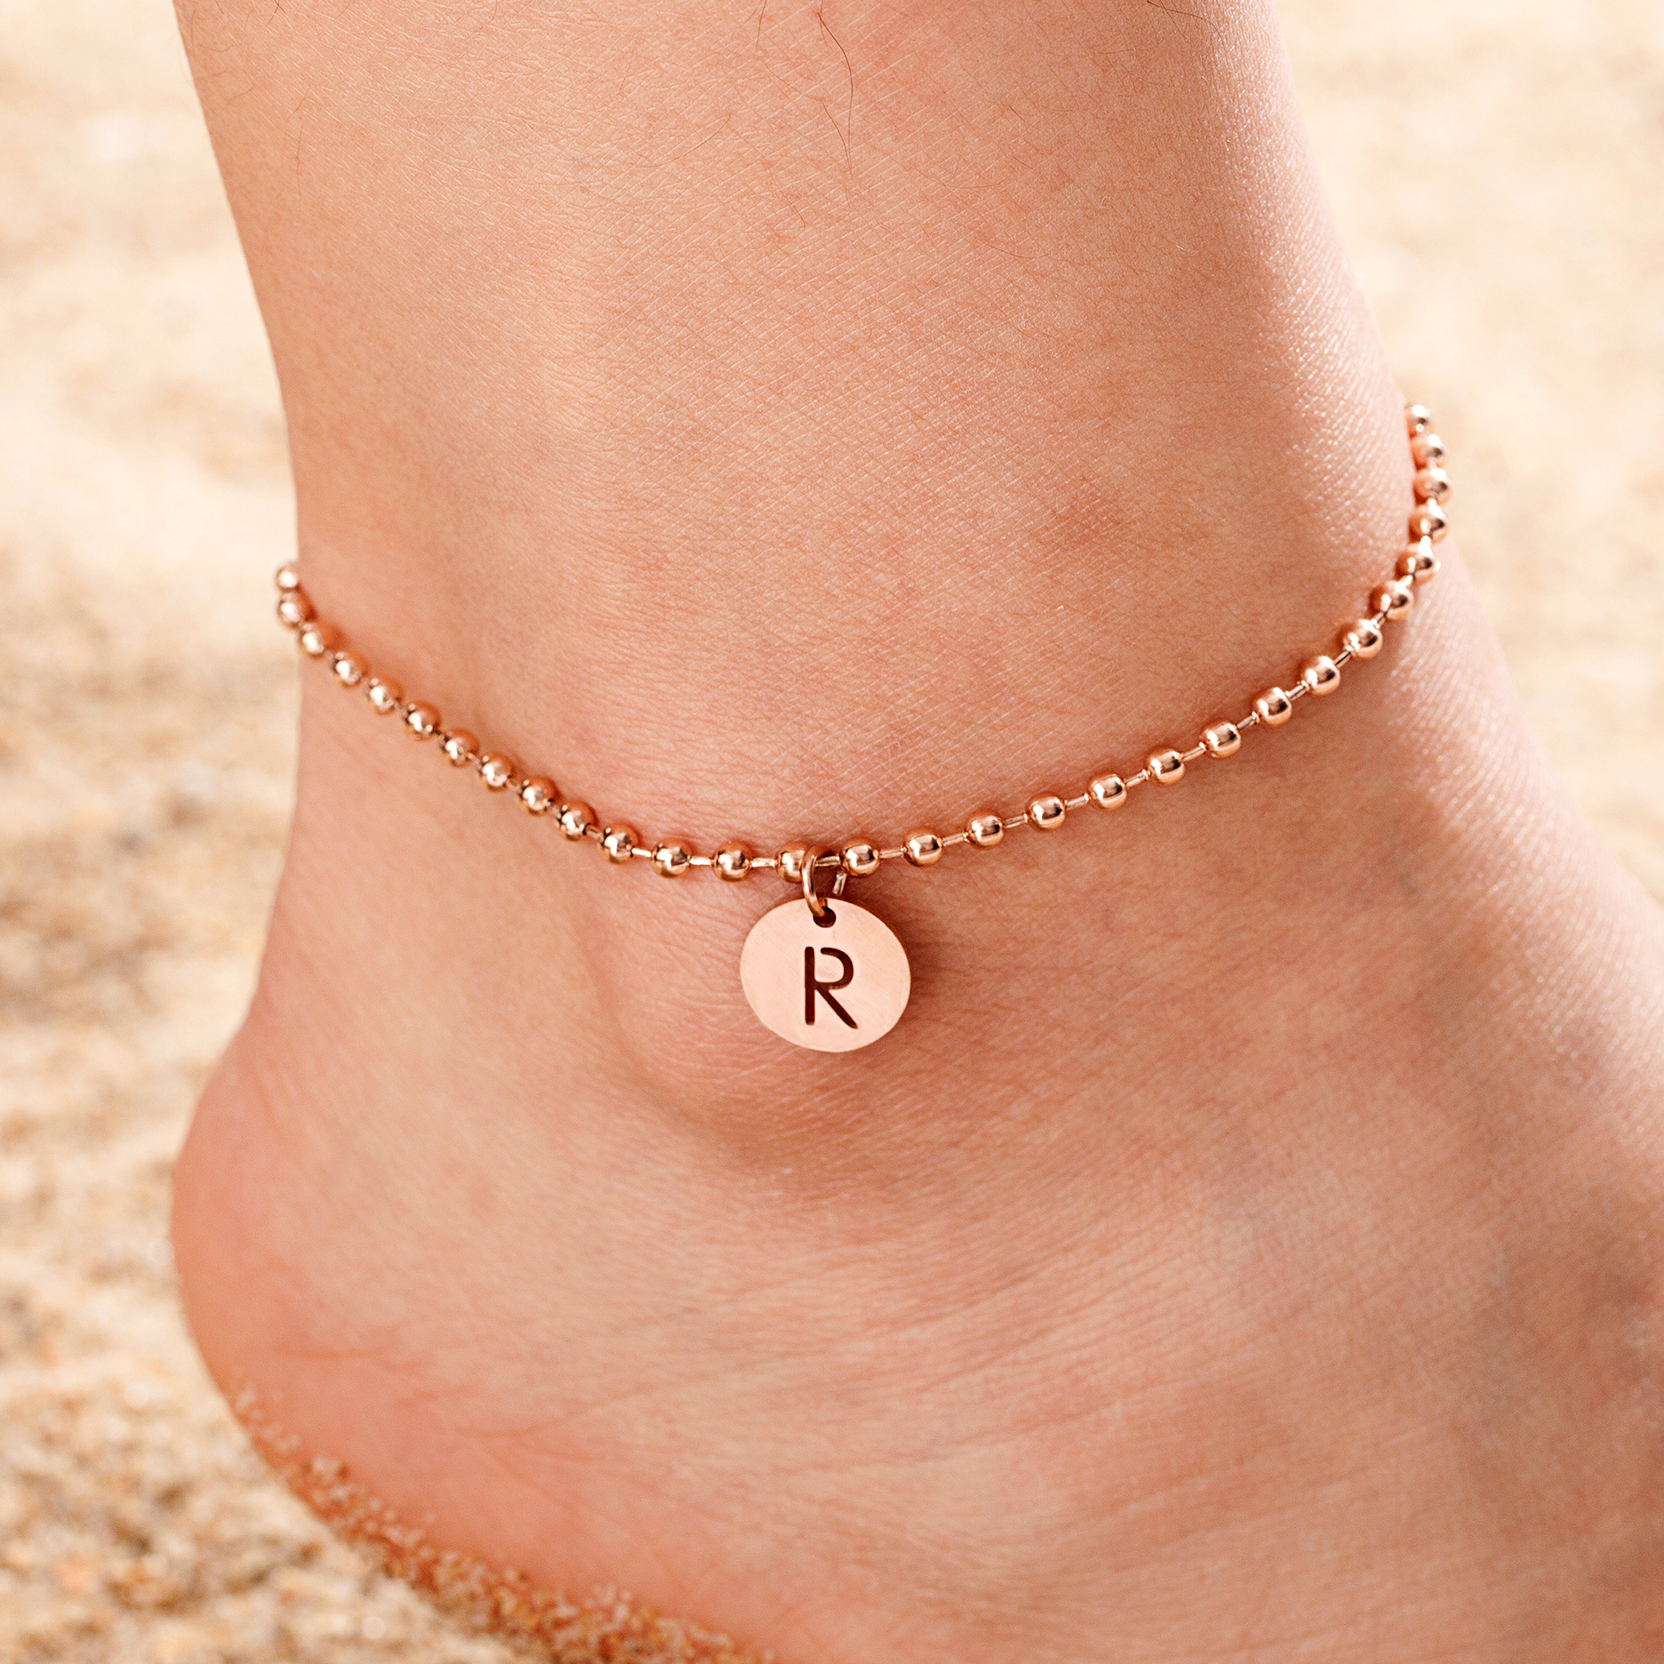 Fashion Women A-Z Initial Anklet Stainless Steel Beaded Chain Beach Anklet Bracelet Girl Letter name Leg Chain Jewelry charm hot